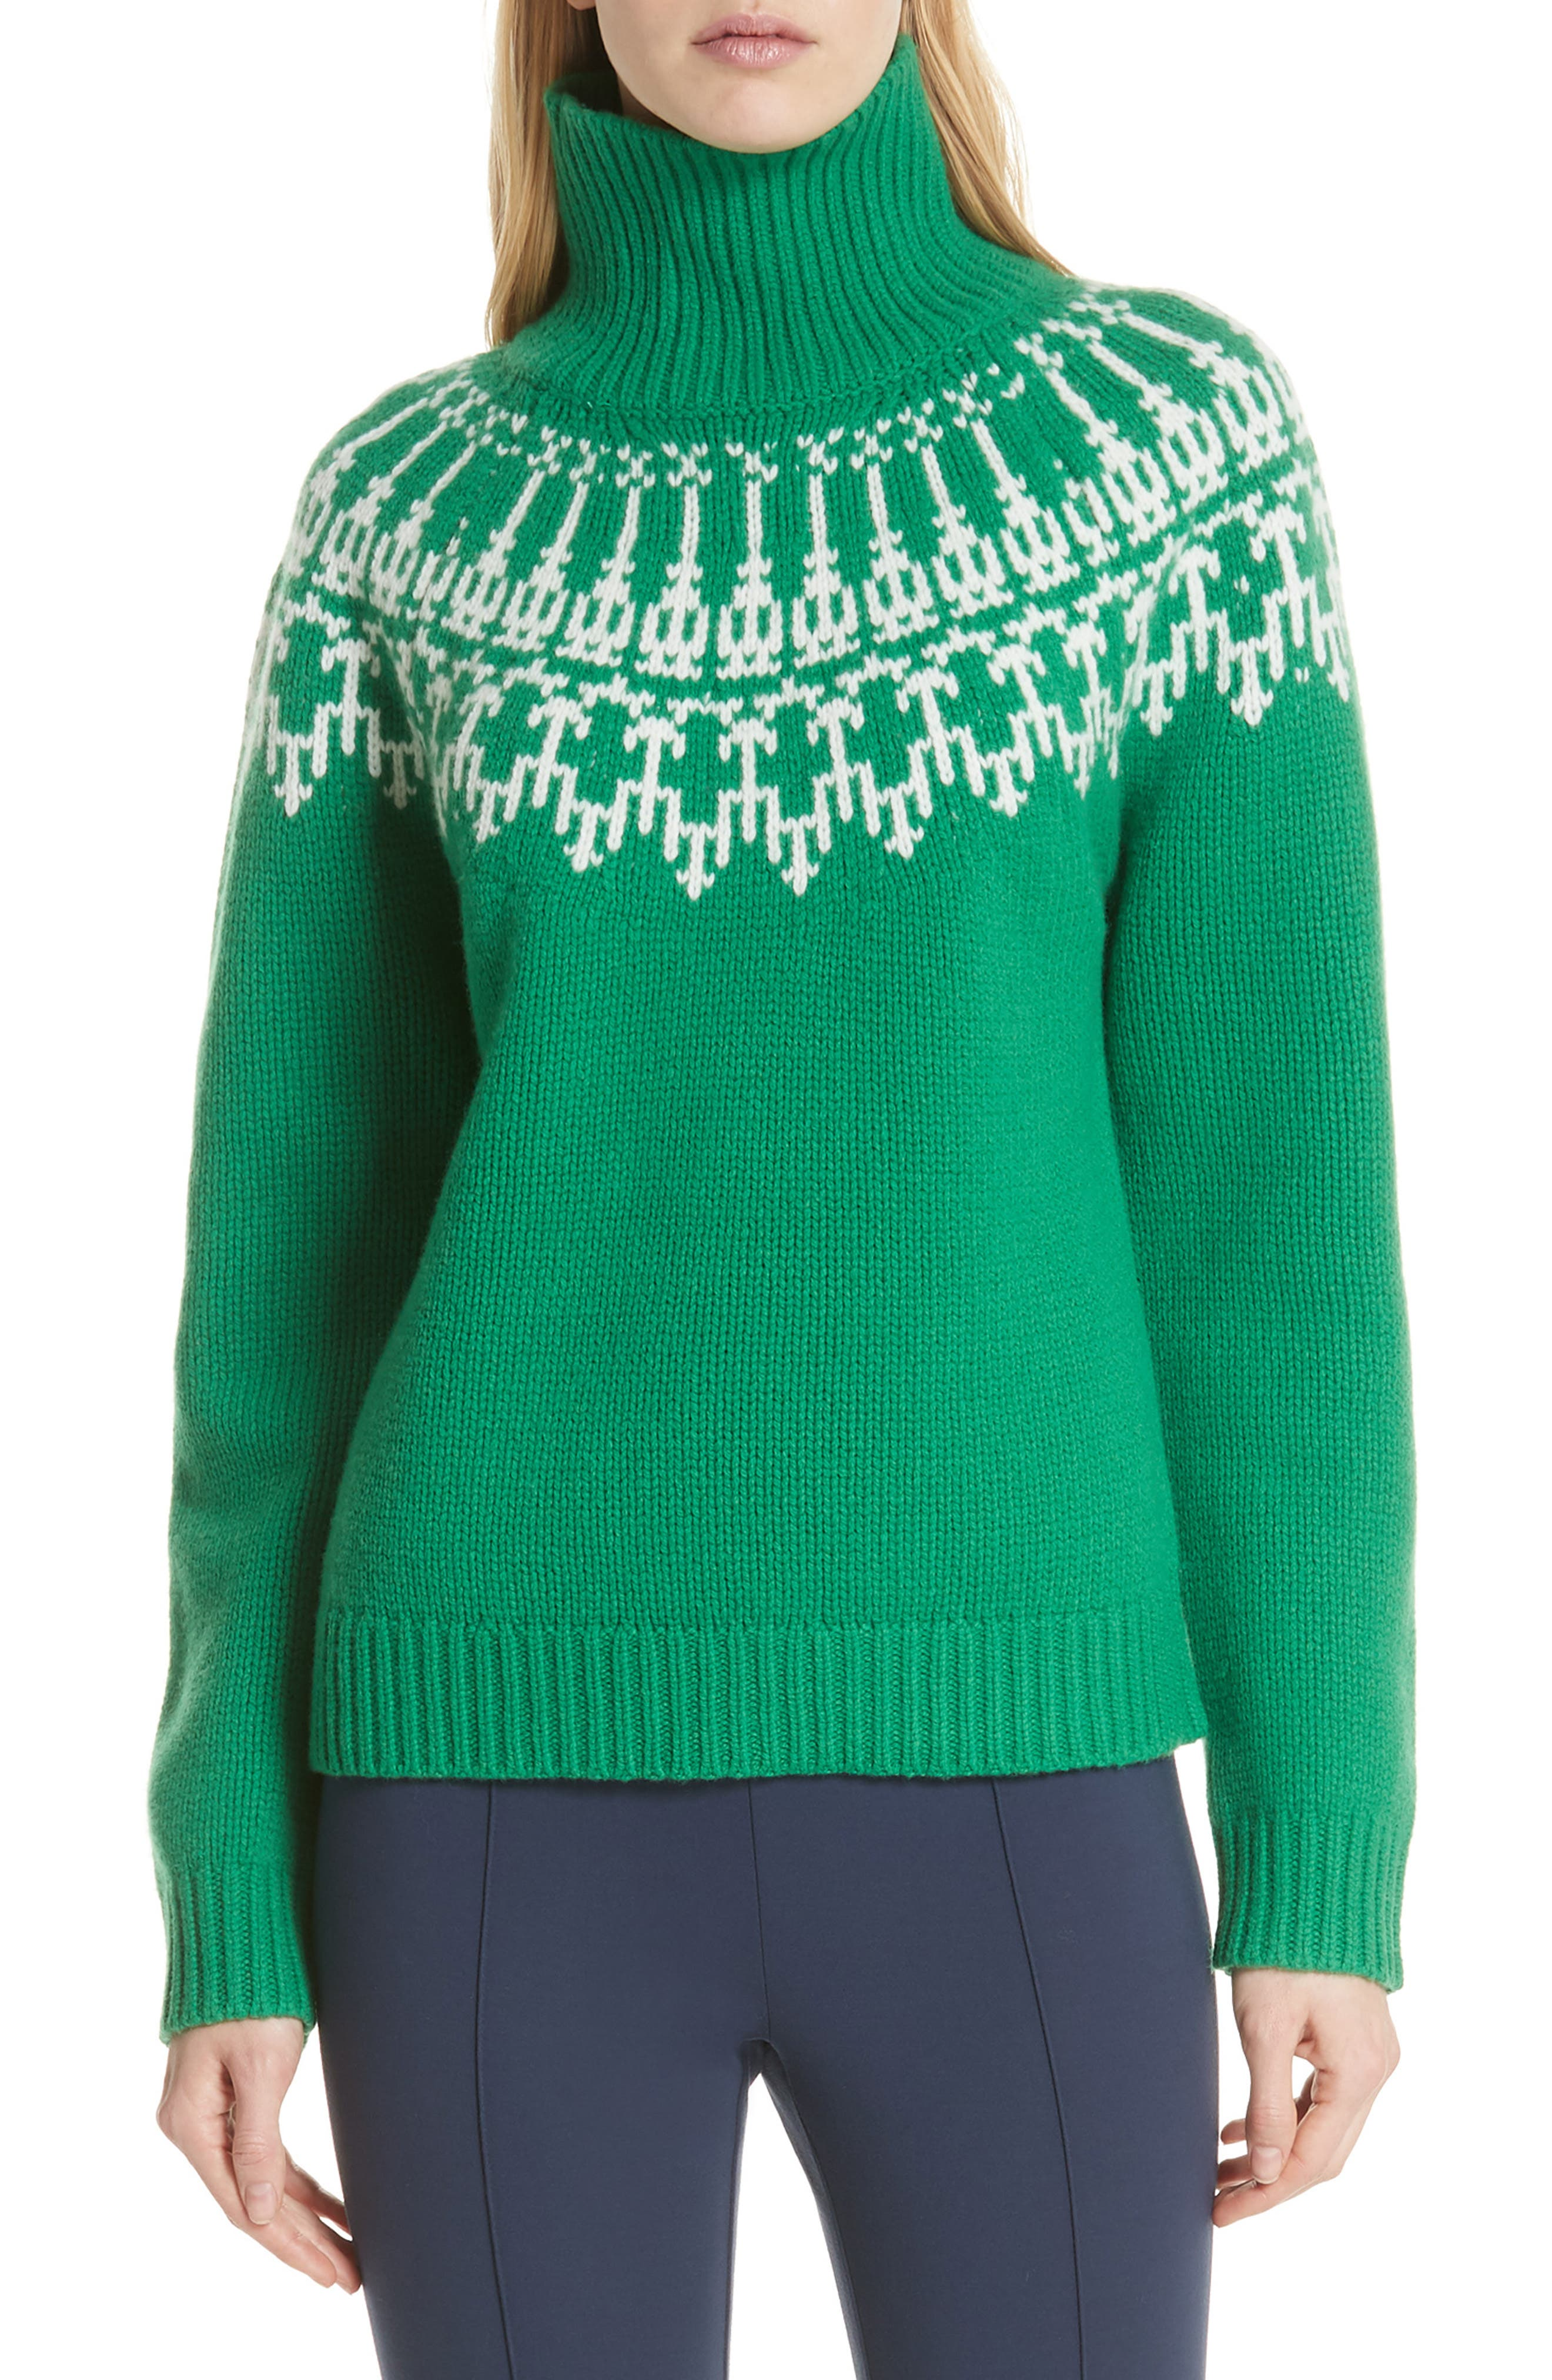 TORY SPORT,                             Fair Isle Turtleneck Sweater,                             Main thumbnail 1, color,                             349